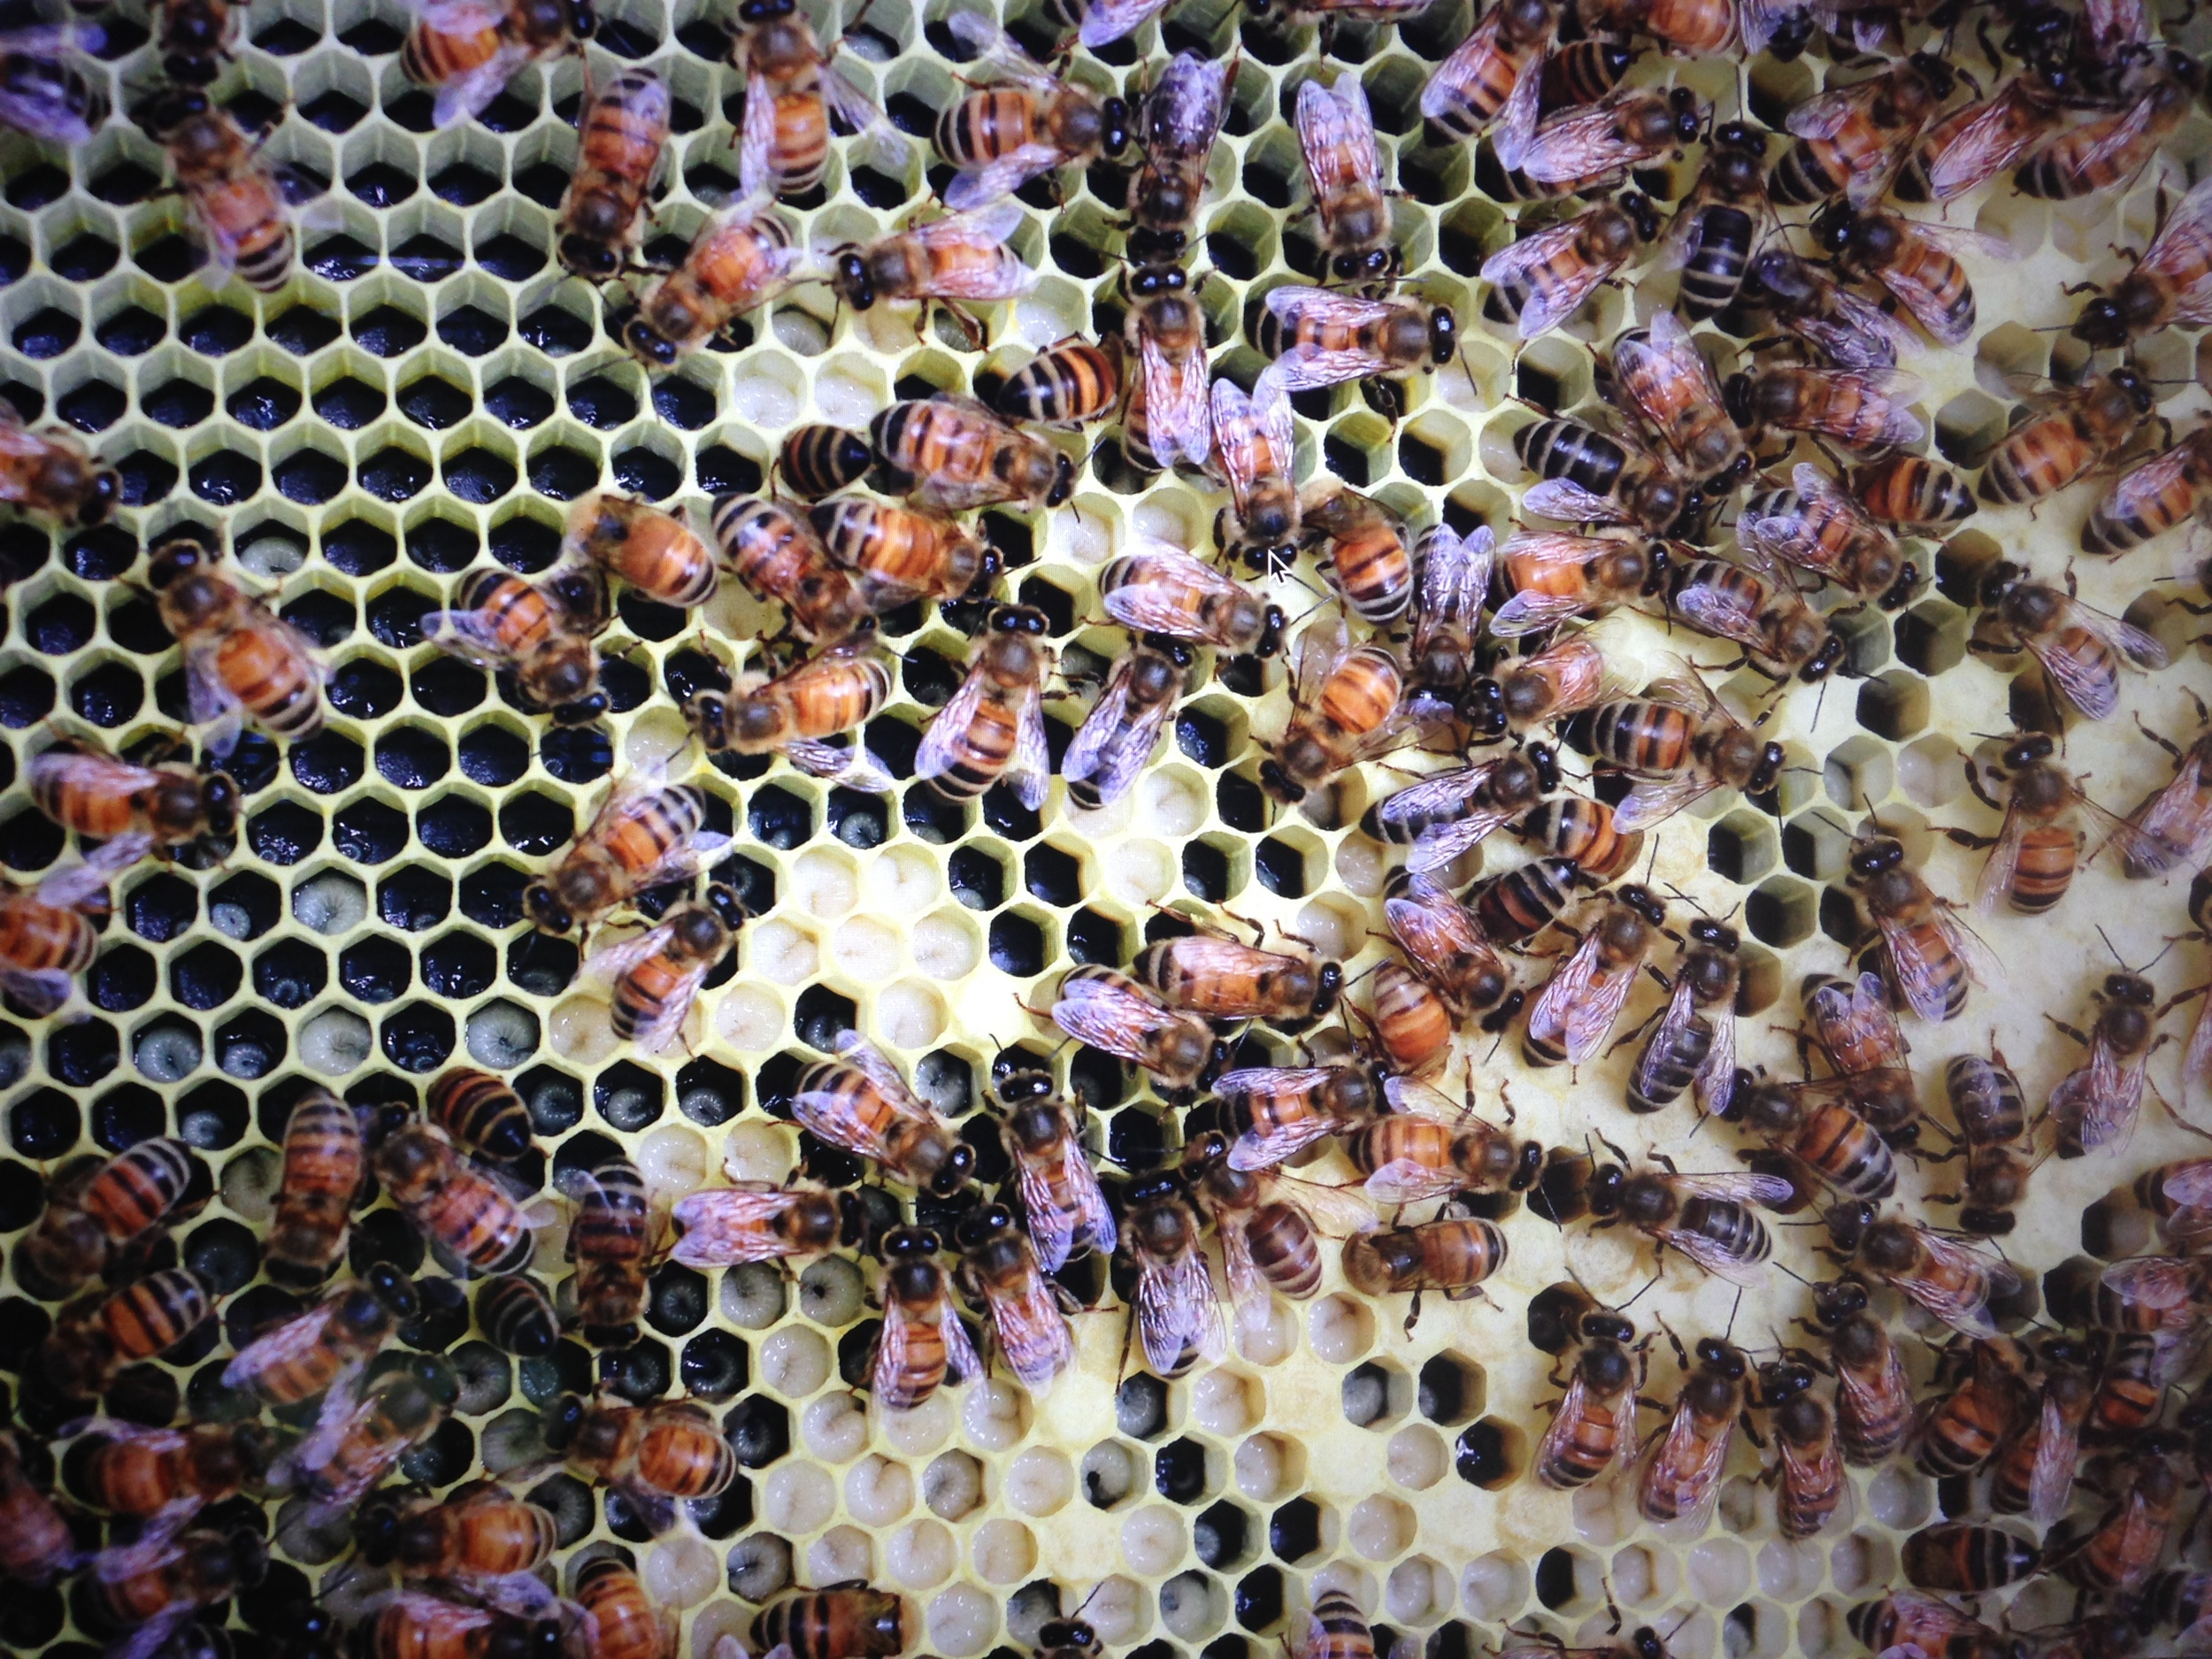 Bee larvae at various stages inside the honeycomb cells.